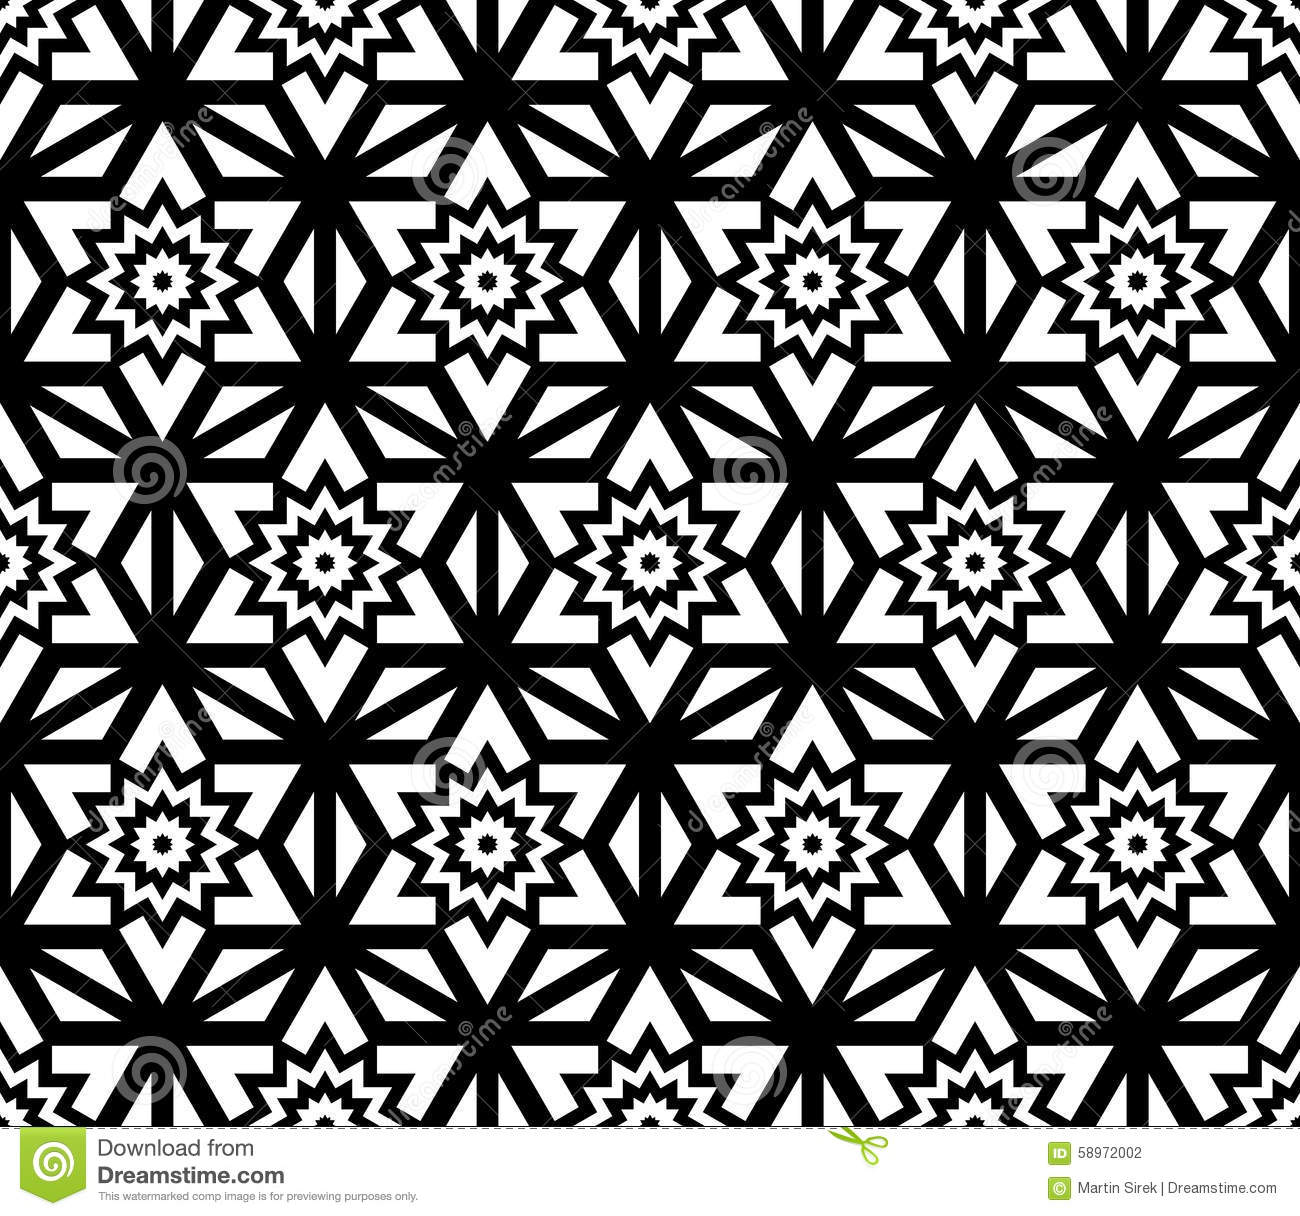 Bed sheets texture seamless - Vector Modern Seamless Pattern Geometry